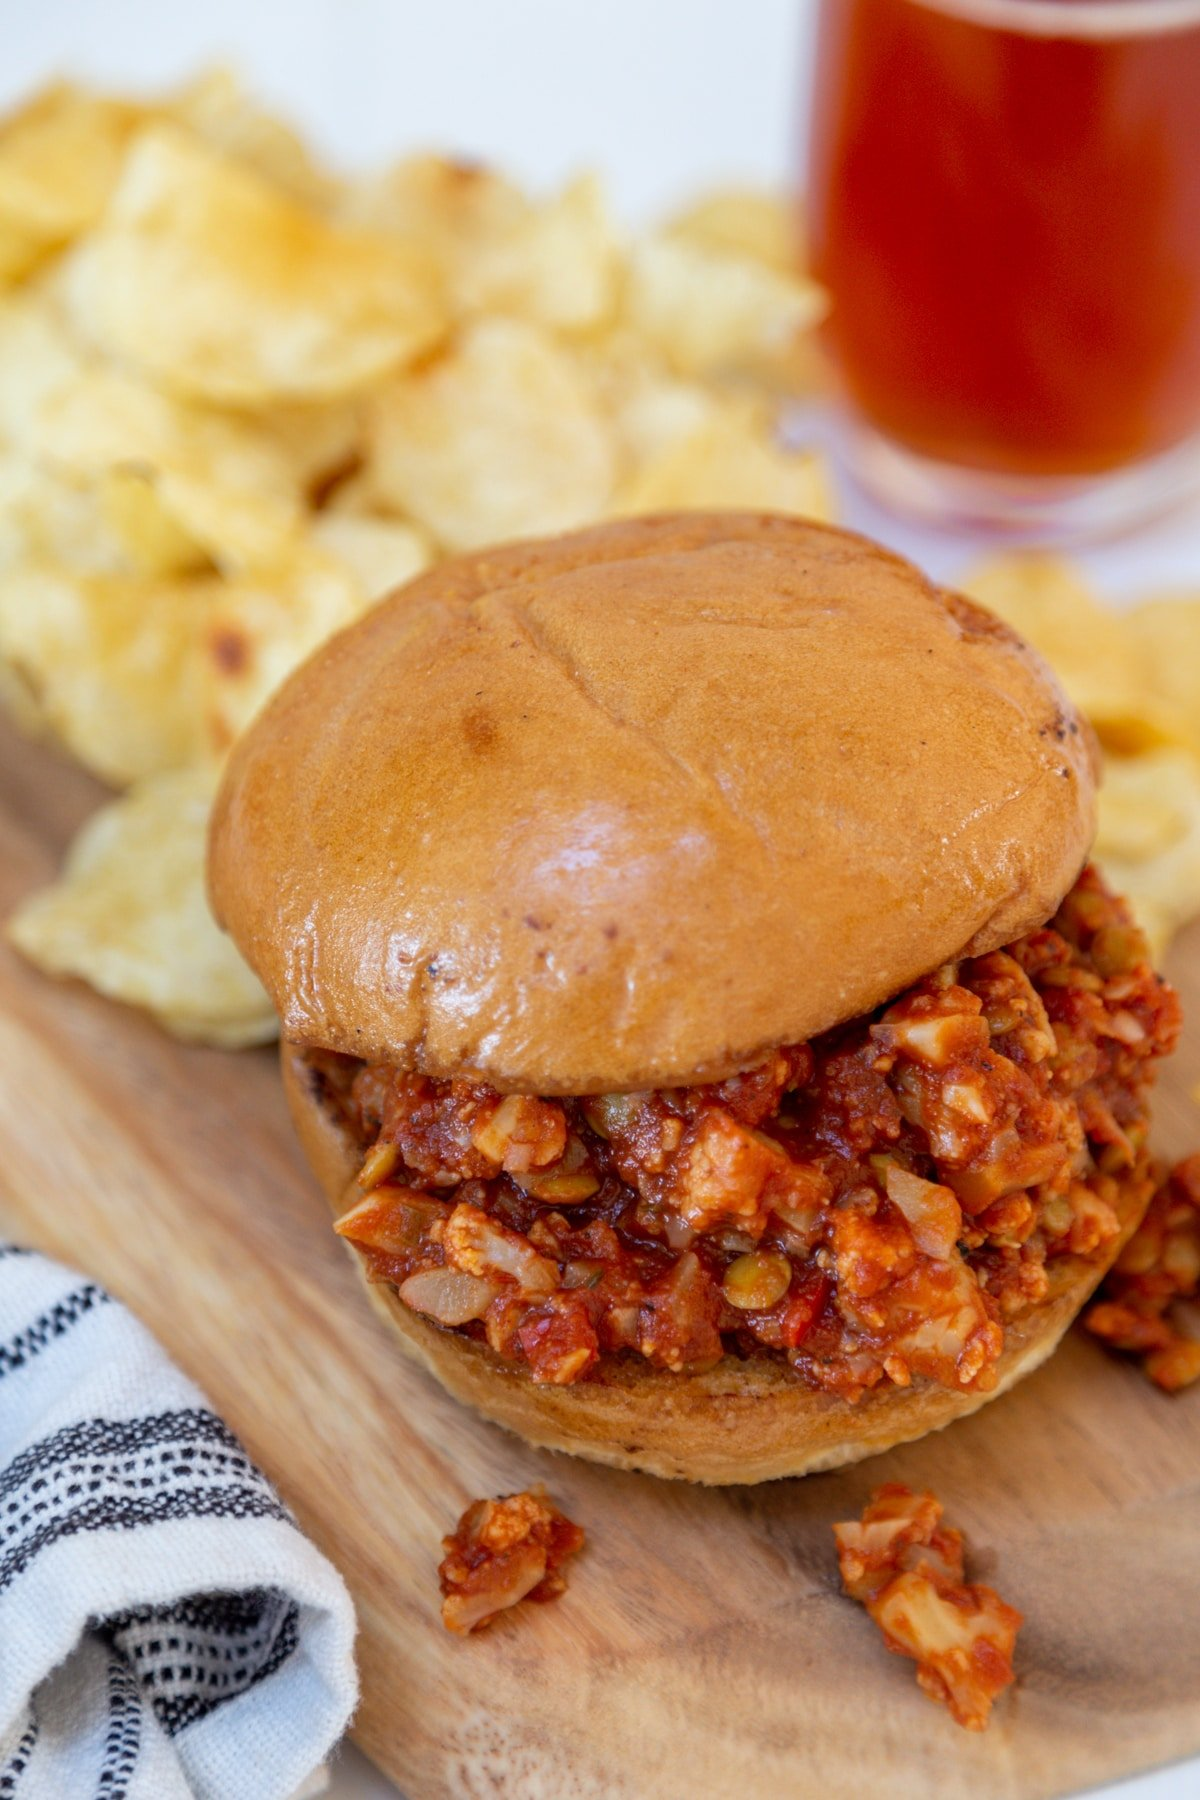 A sloppy Joe sandwich on a wooden board with potato chips and a glass of beer in the background.